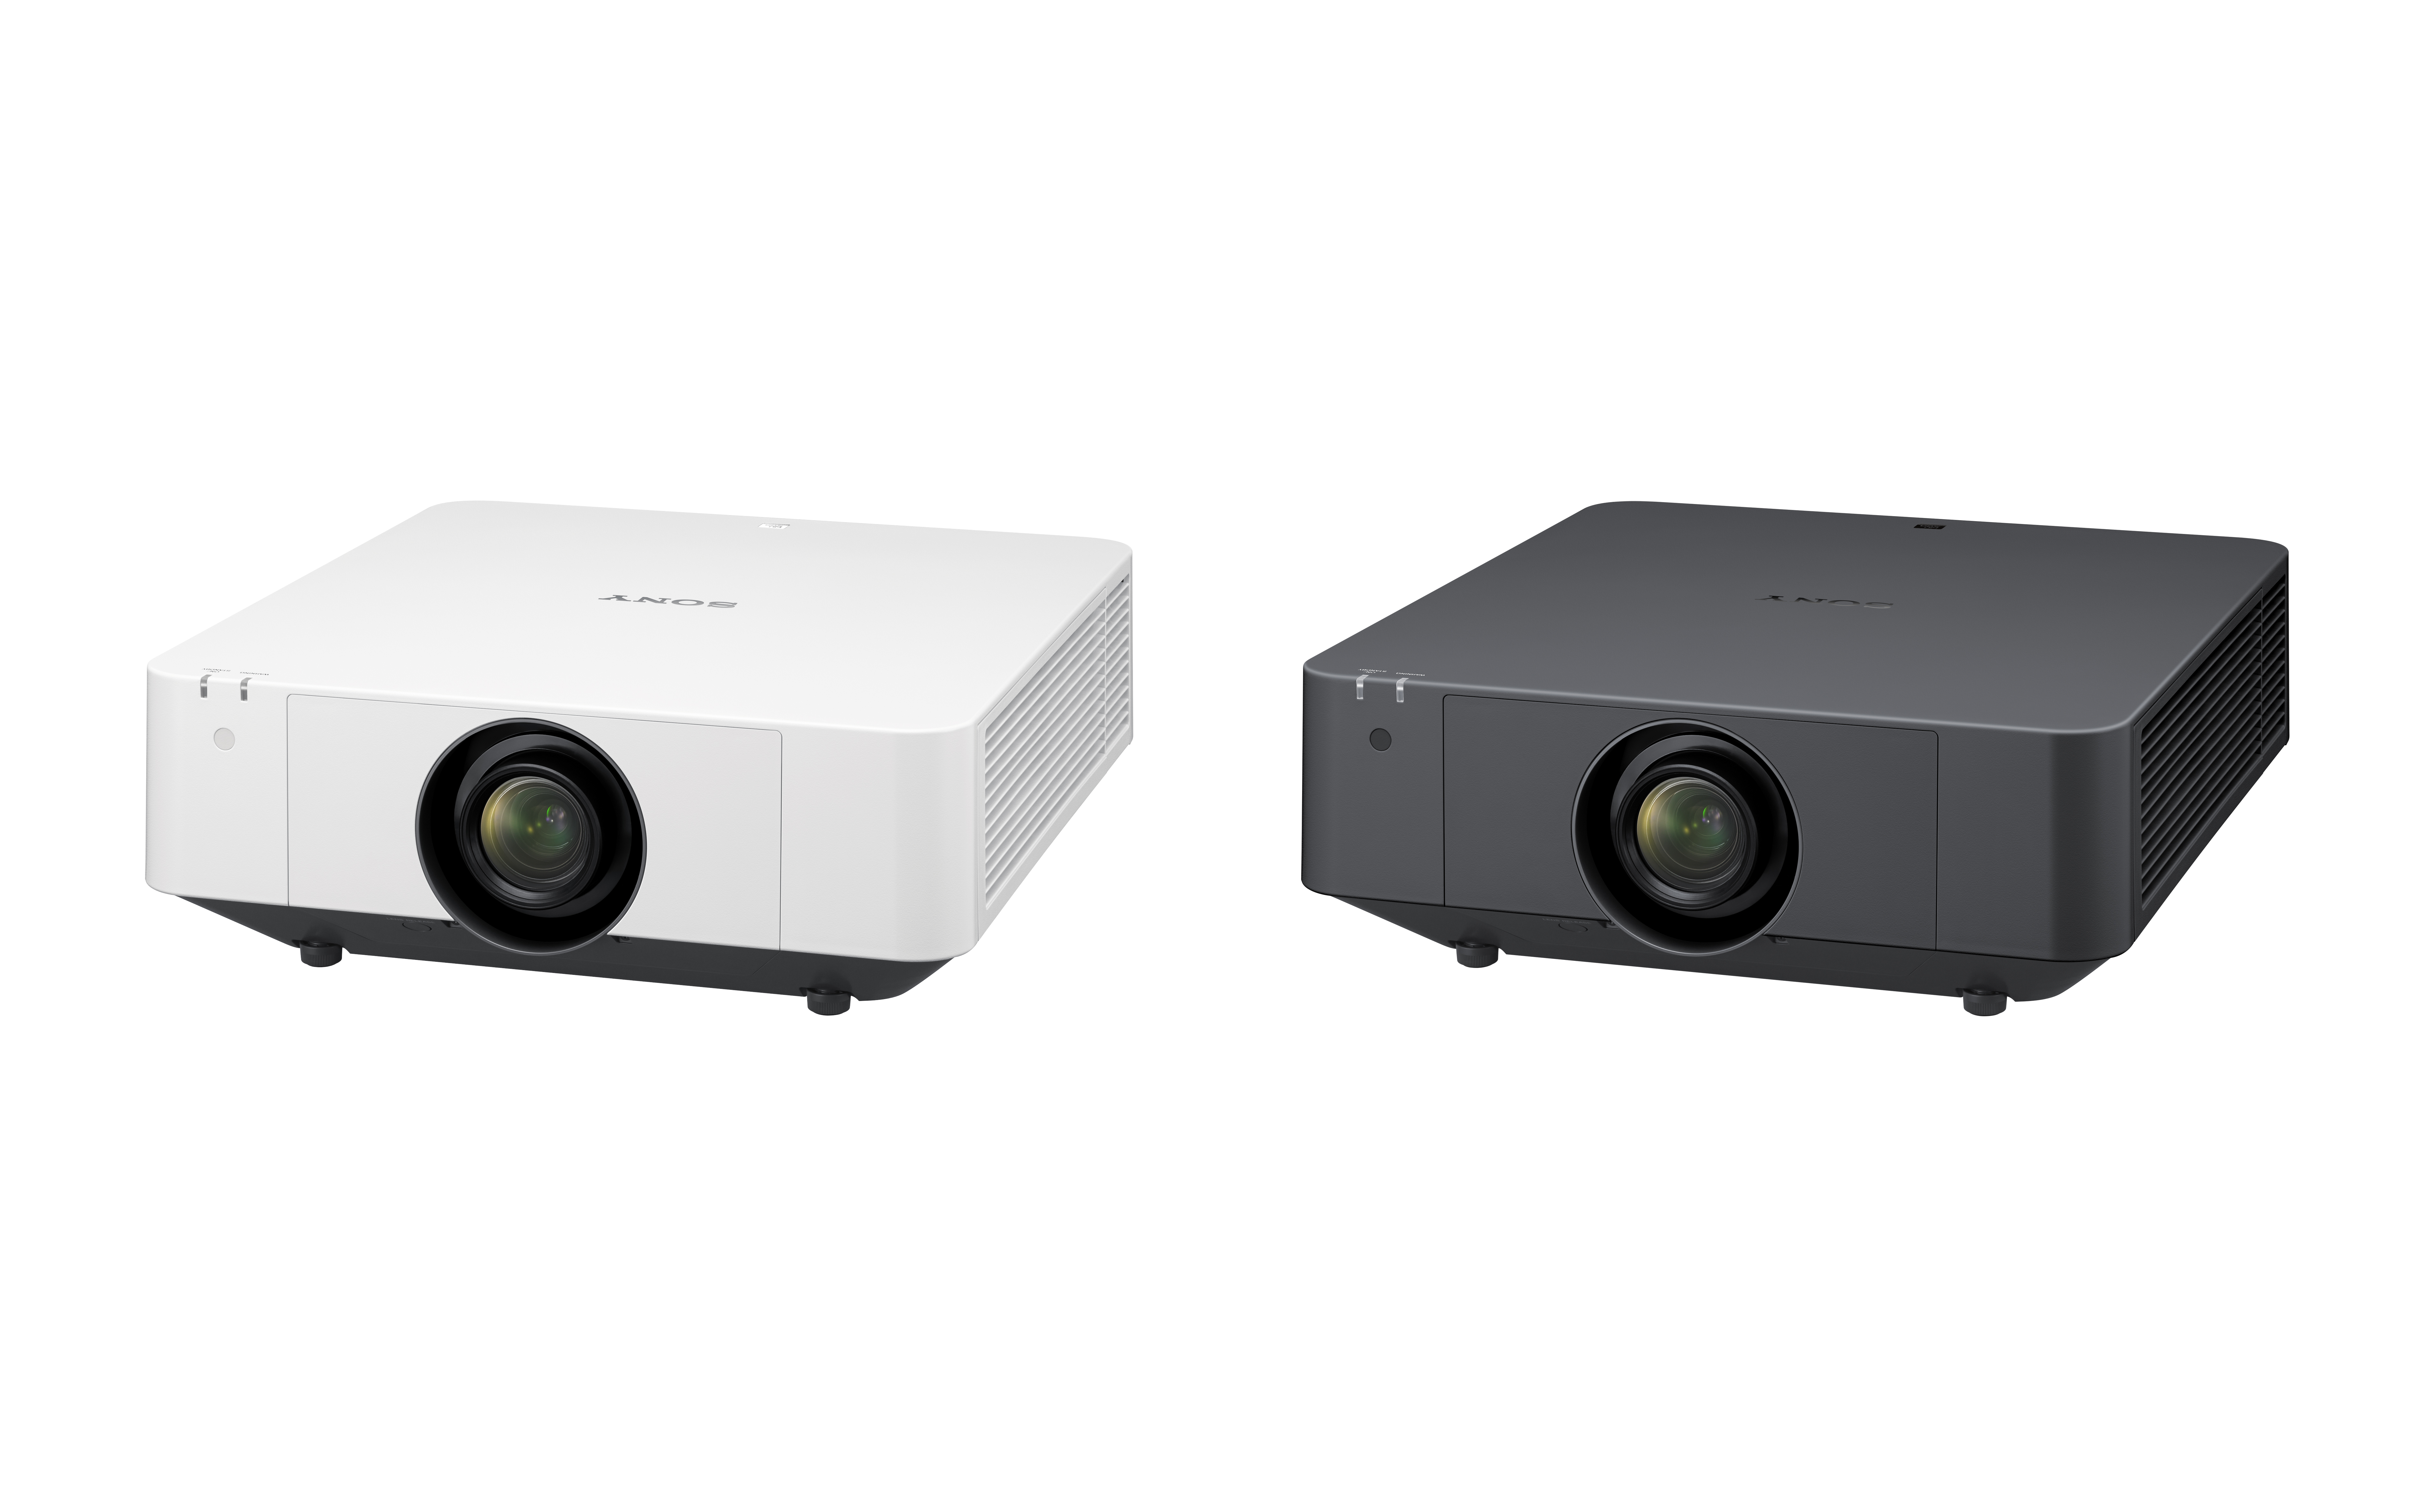 Introduces Two New Laser Projectors Using Newly Developed LCD Panels to Deliver High-Contrast Images with Enhanced Clarity for Universities, Corporate Organisations and Museums